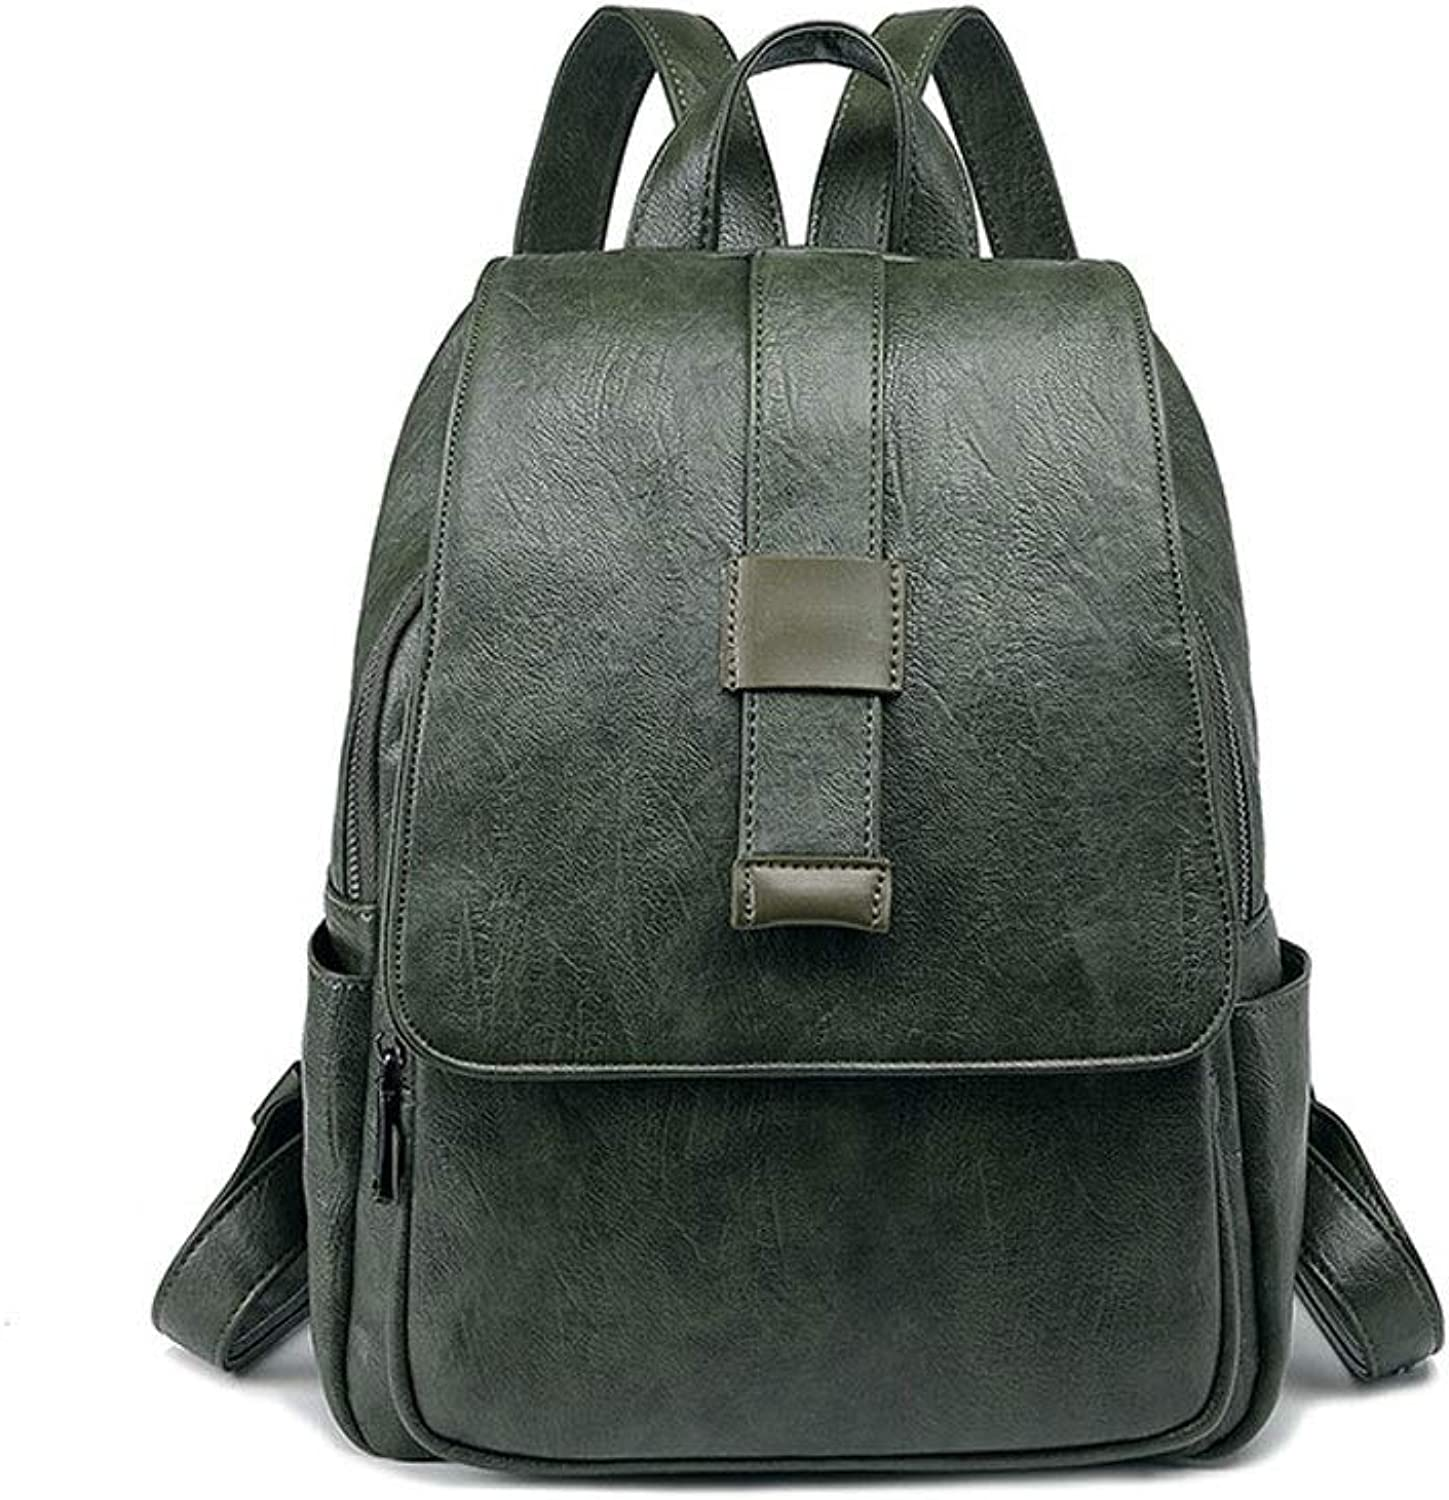 DJSkd Leather Fashion Wild Trend Soft Leather Large Capacity Backpack Female Cowhide Small Backpack (color   Dark green)